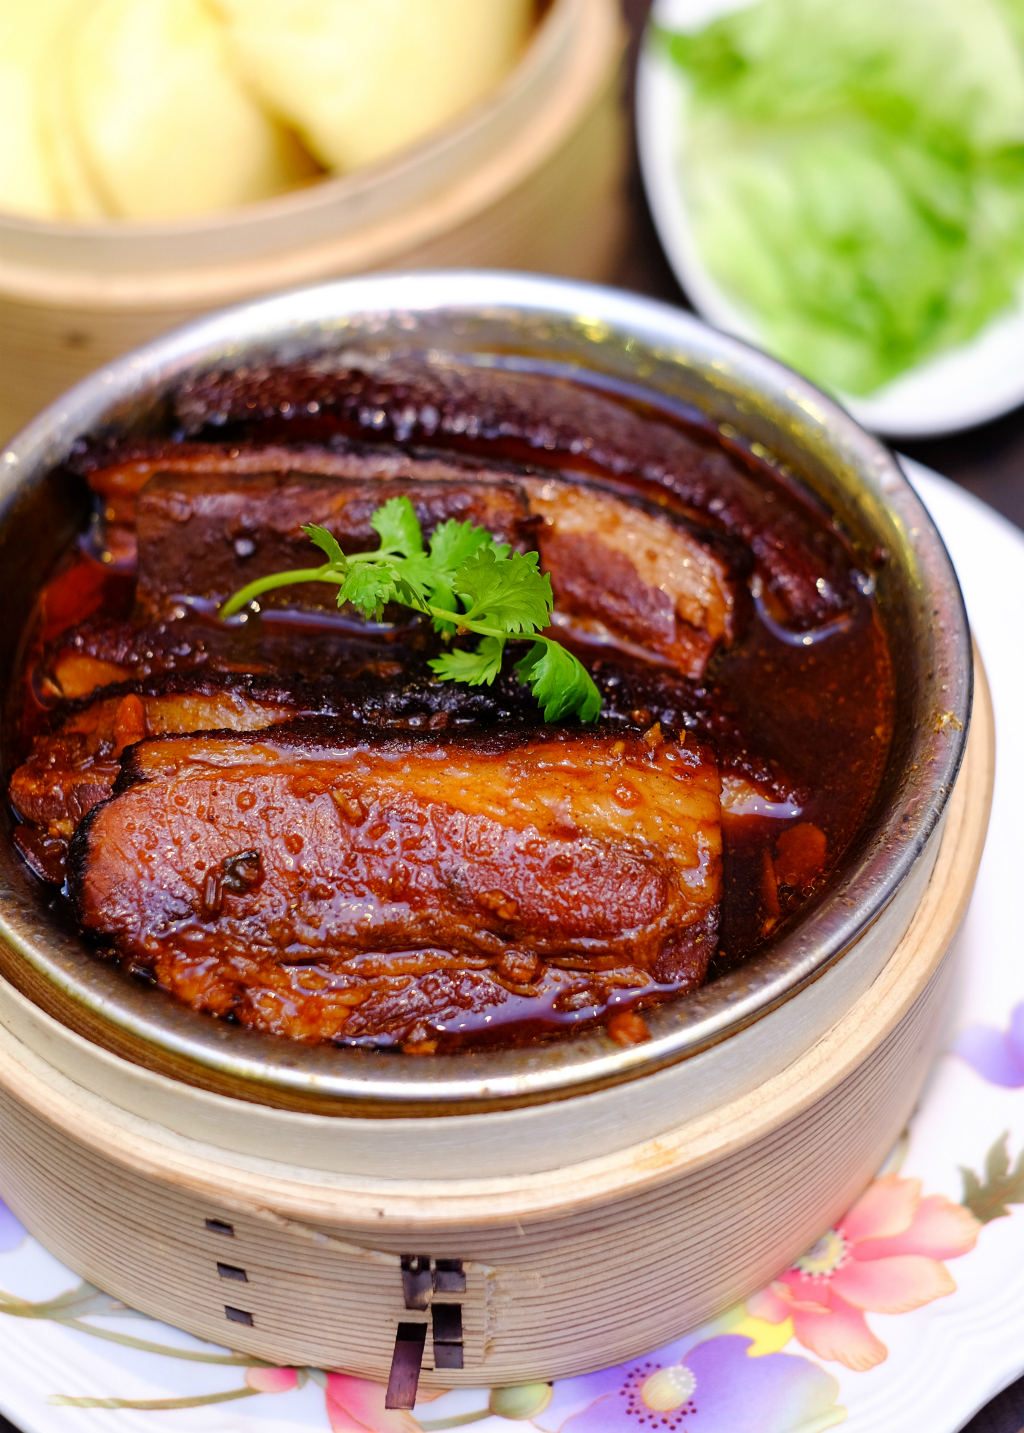 Good Chance Popiah: Stewed Pork